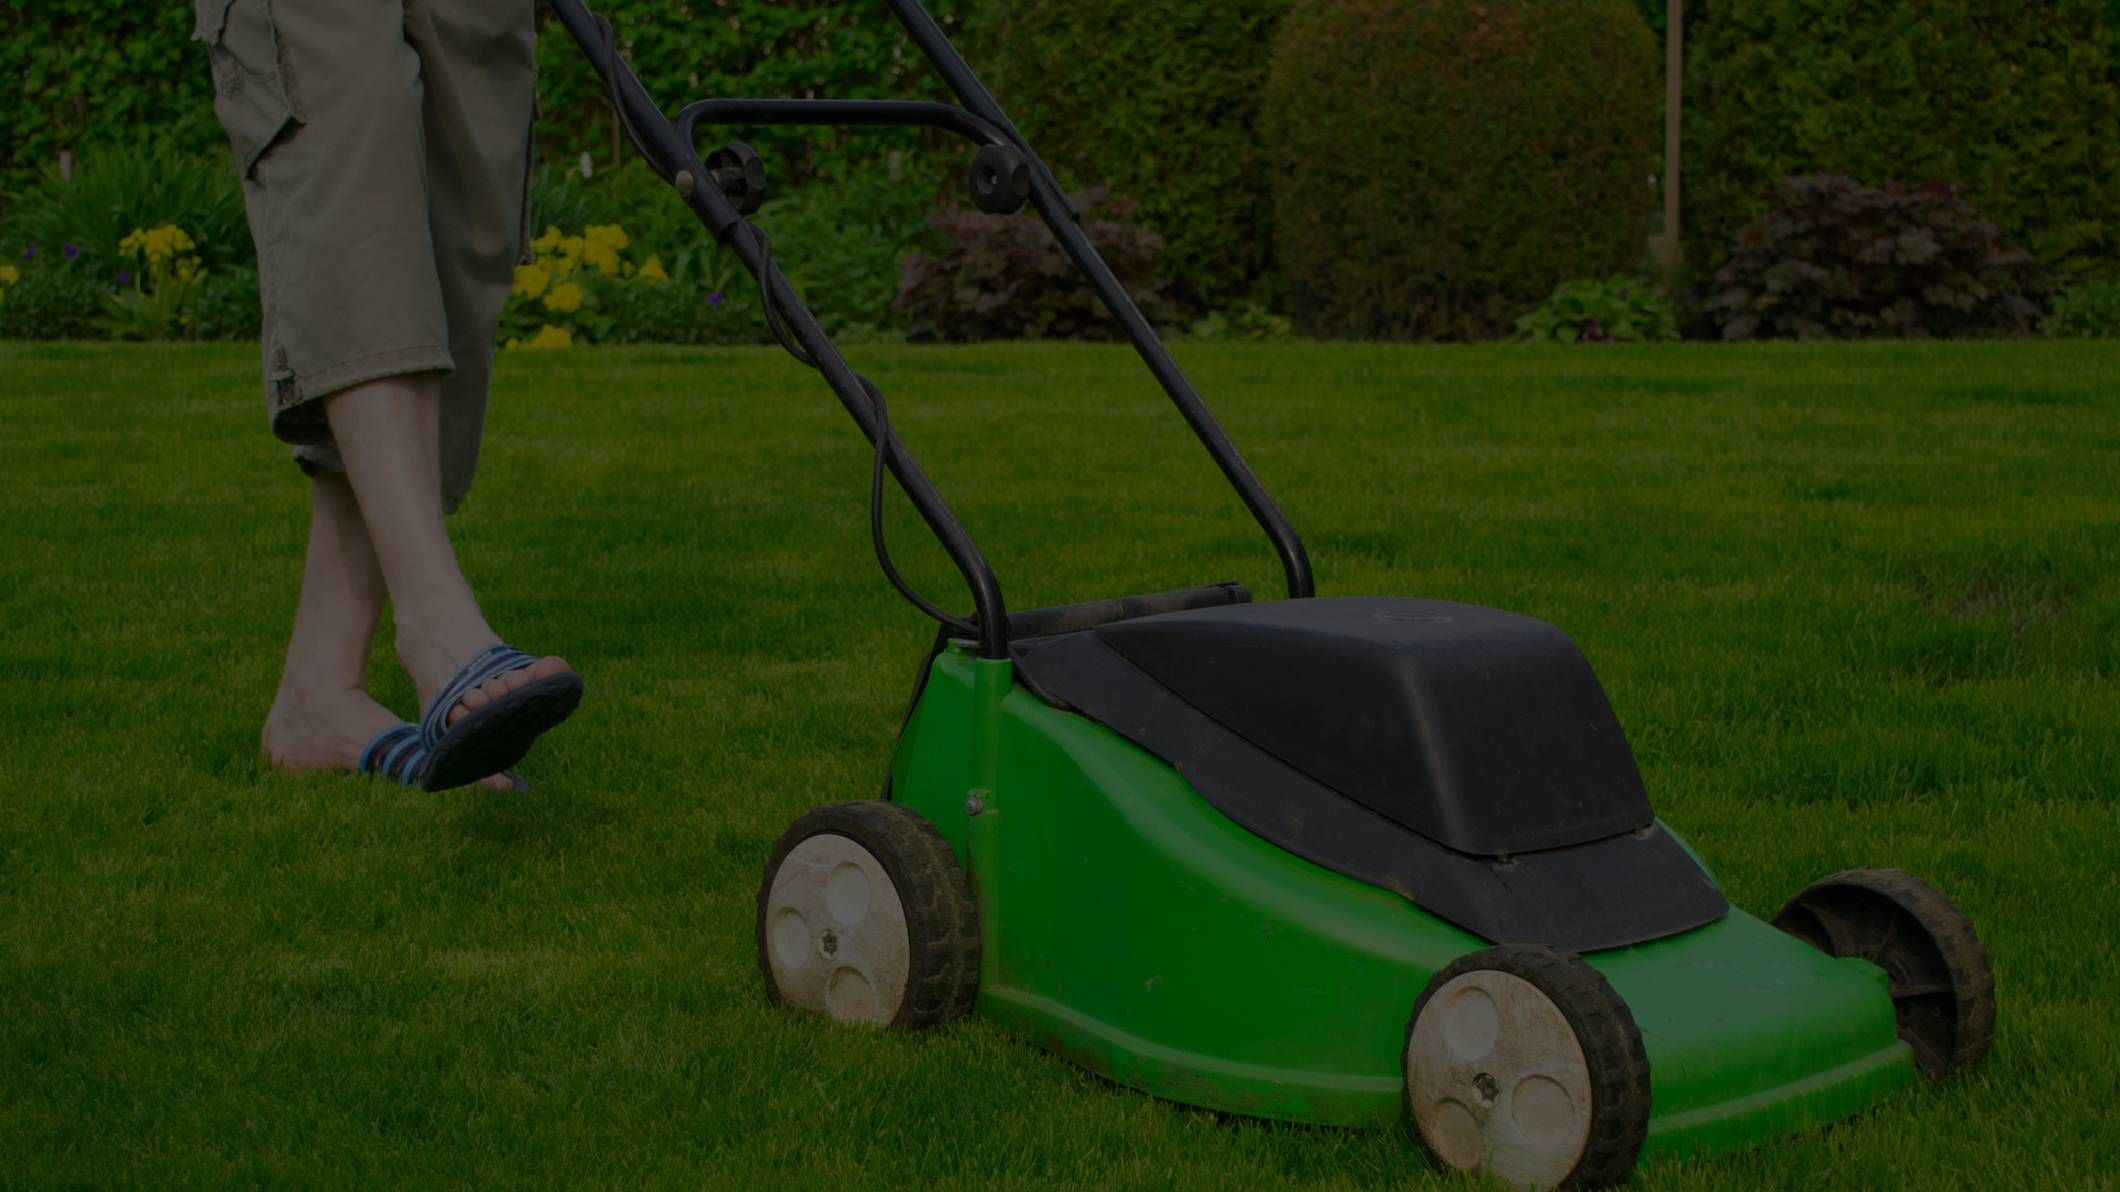 Lawn Care Near Me Palmetto Bay LLP has many years of